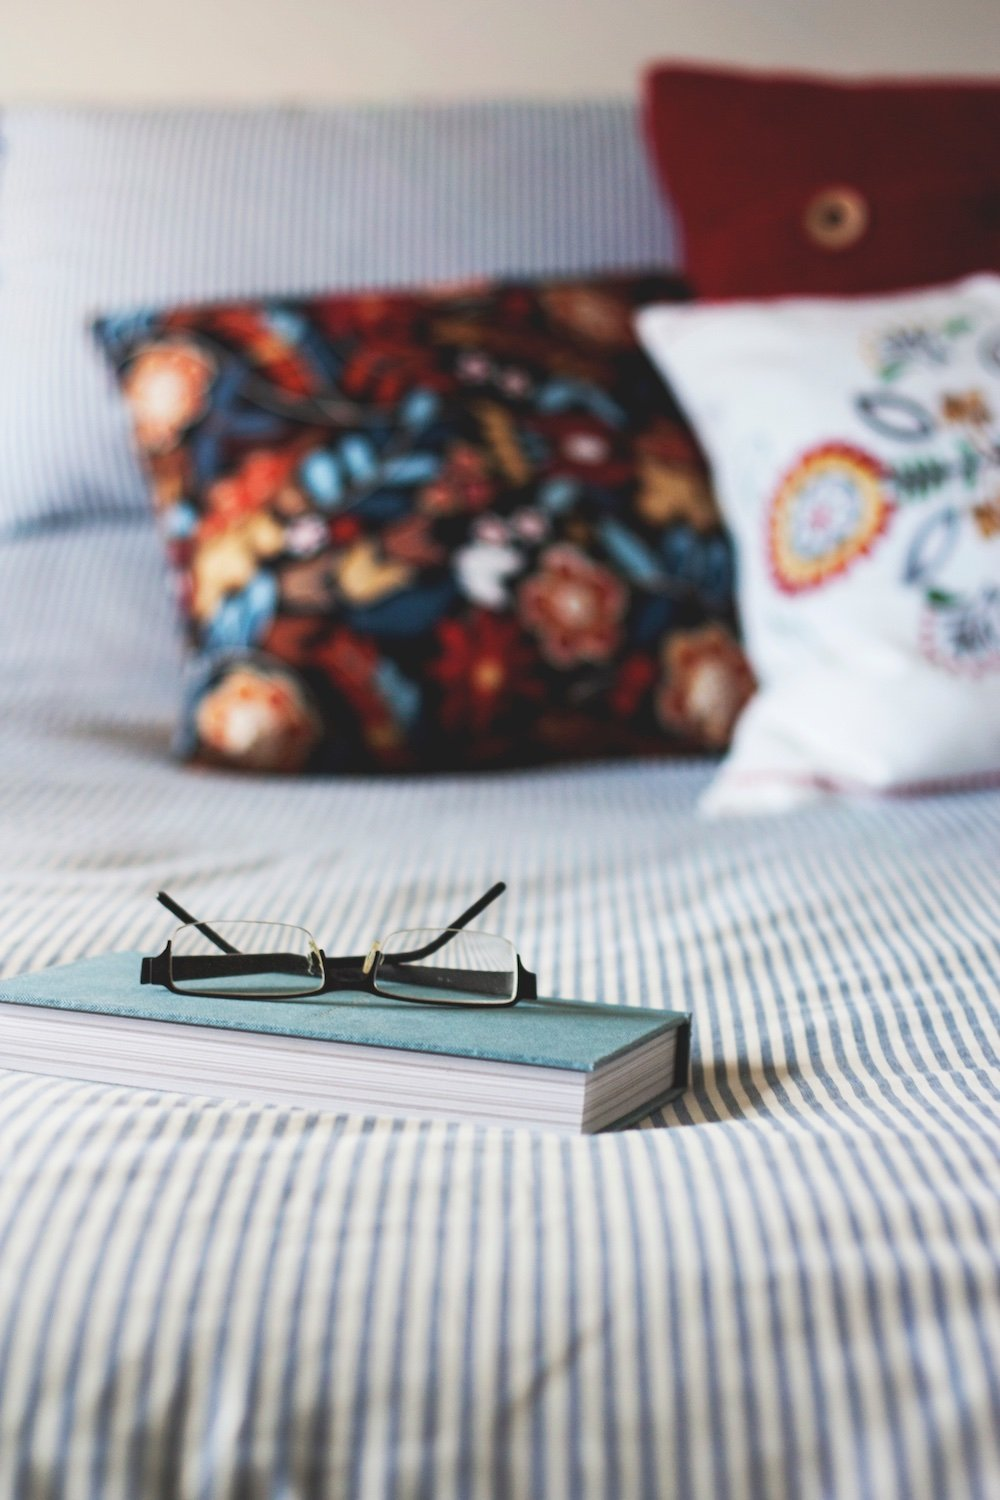 Black glasses on top of a light-turquoise journal sitting on a bed with faded blue stipes.